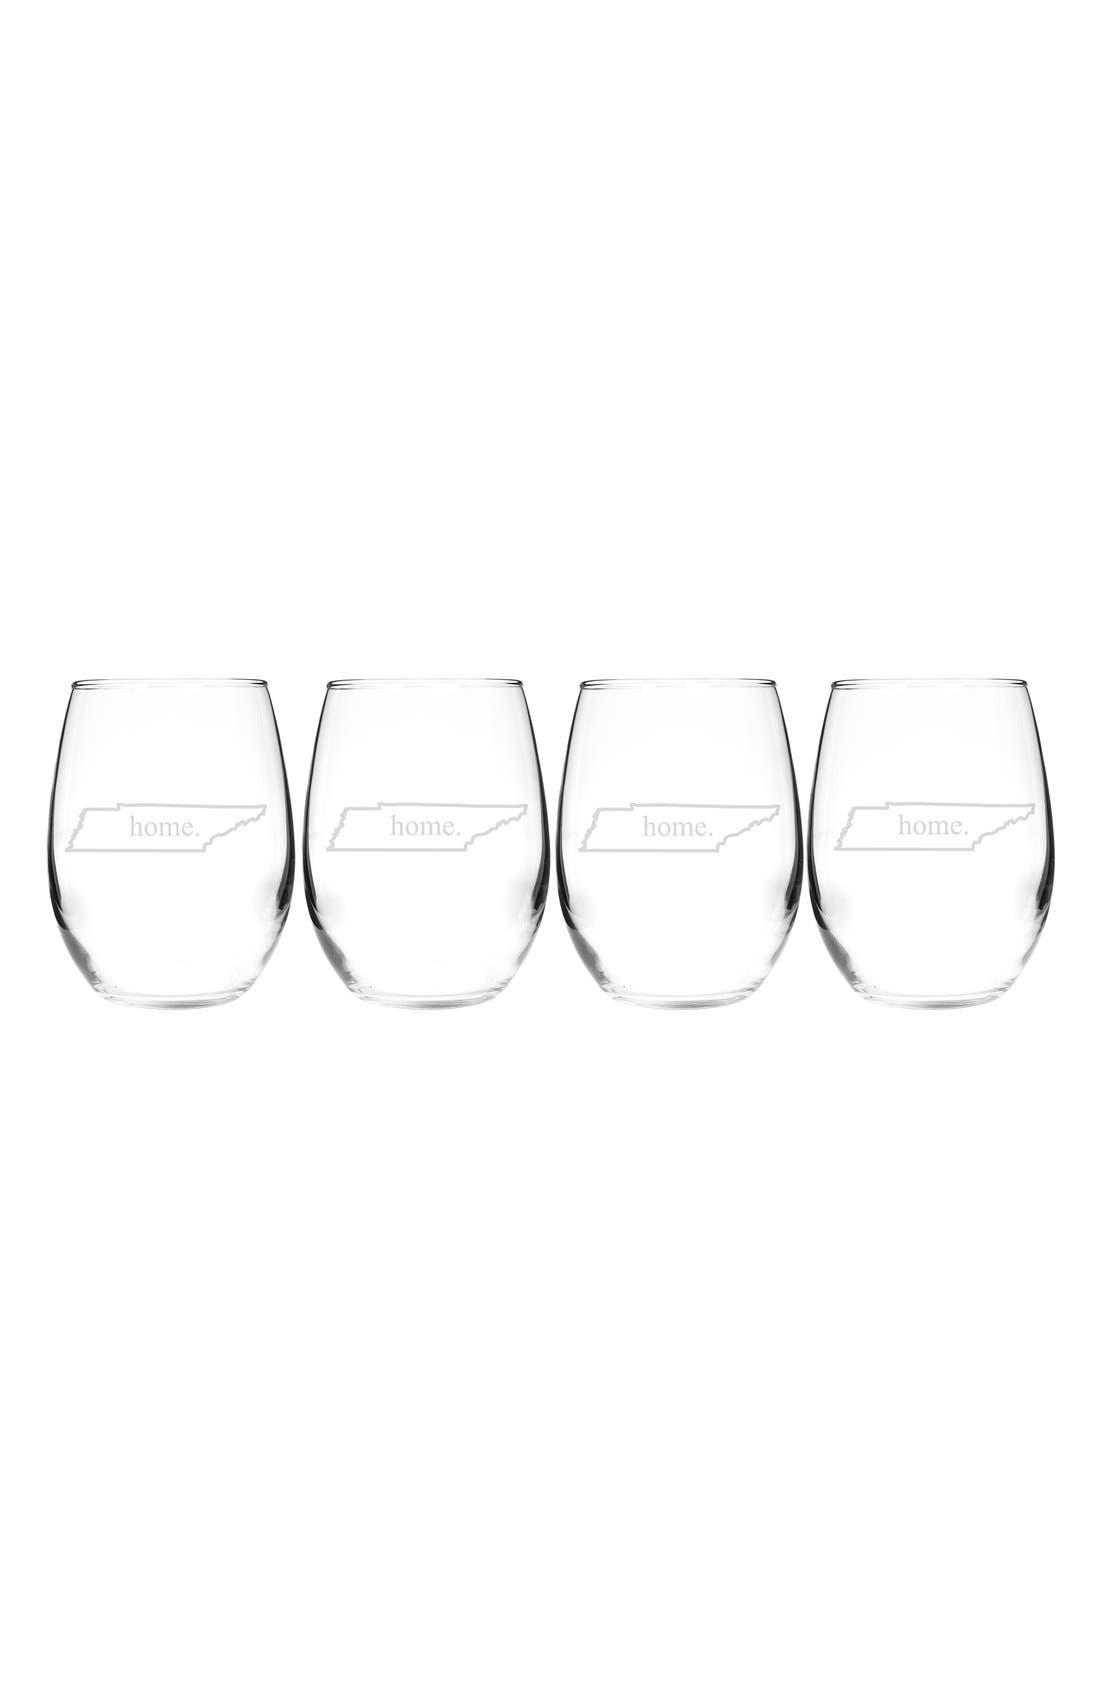 Home State Set of 4 Stemless Wine Glasses,                             Main thumbnail 43, color,